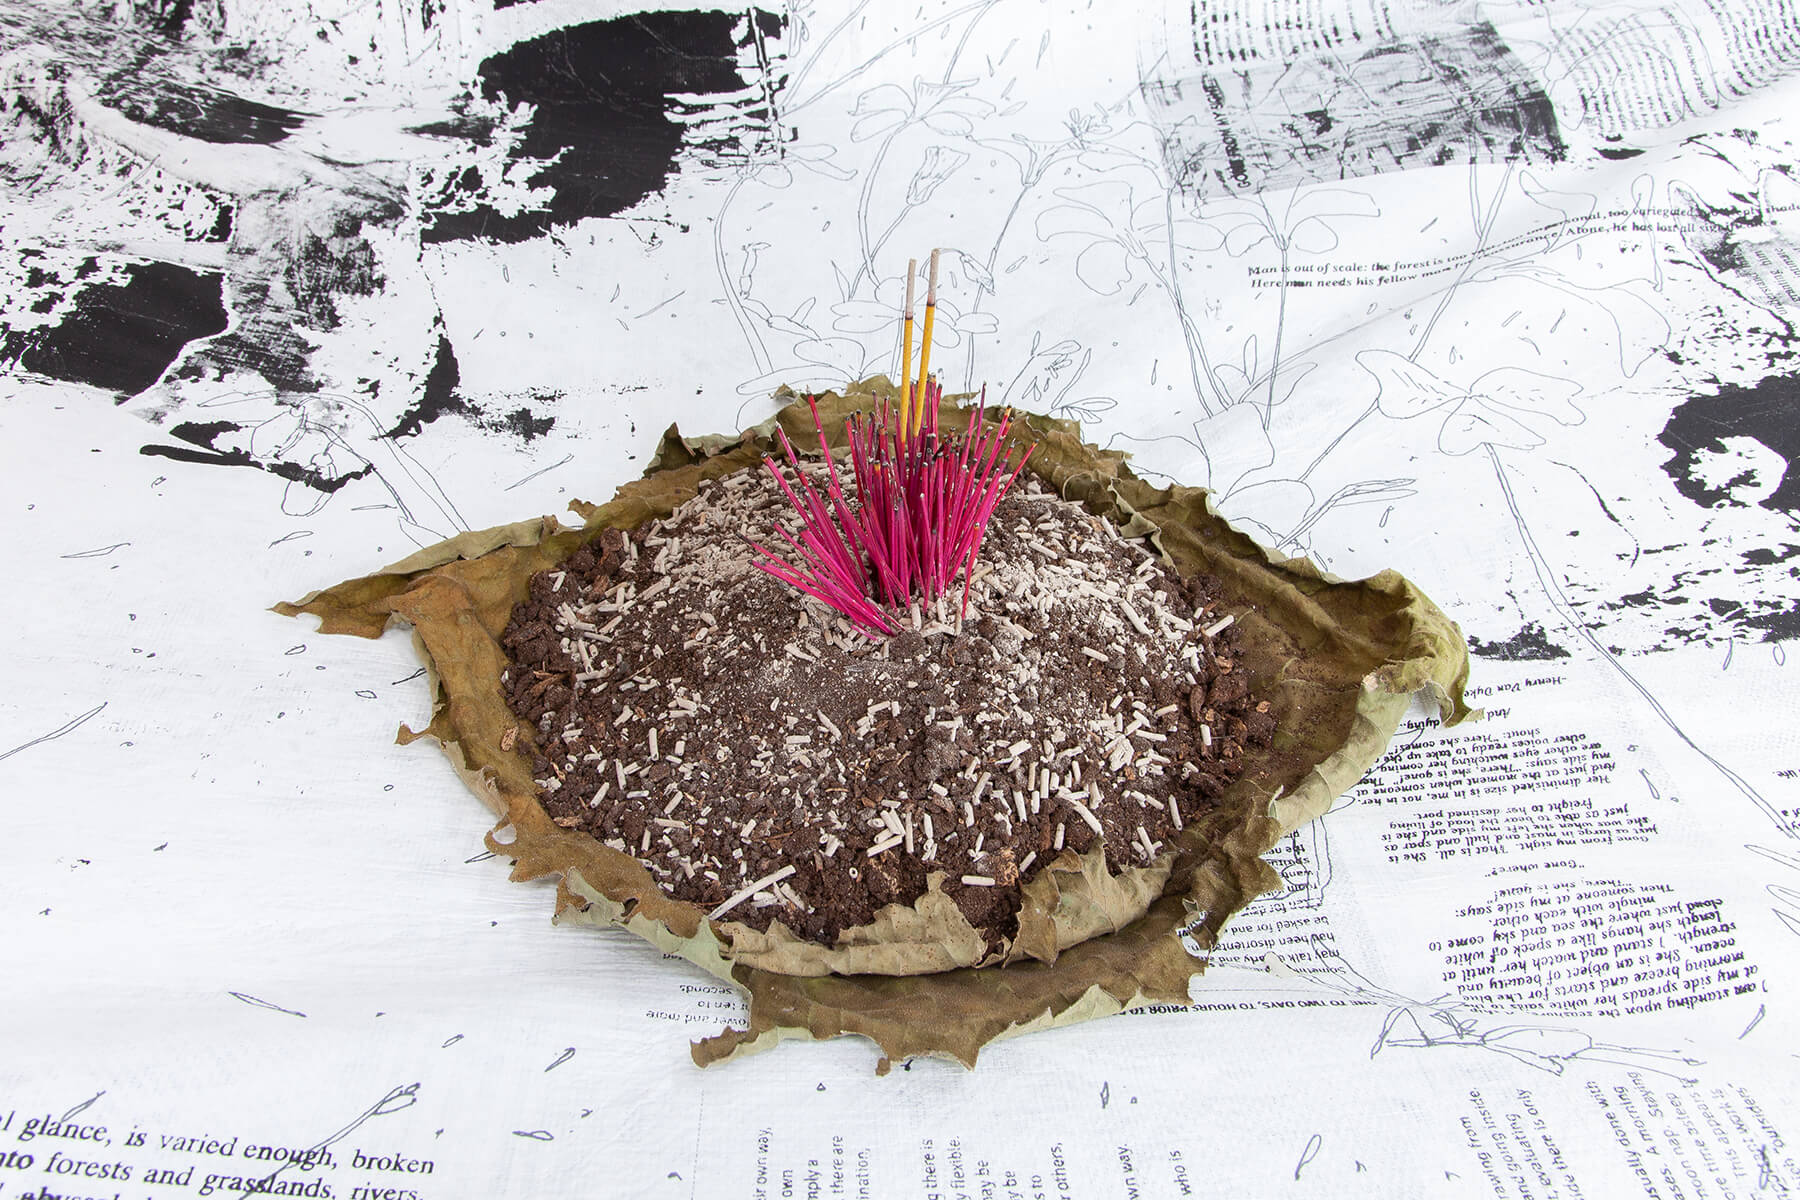 A horizontally-oriented color photograph of a large pile of ashes with burned incense sticks at the center. In the background of the image are black and white writings and drawings.